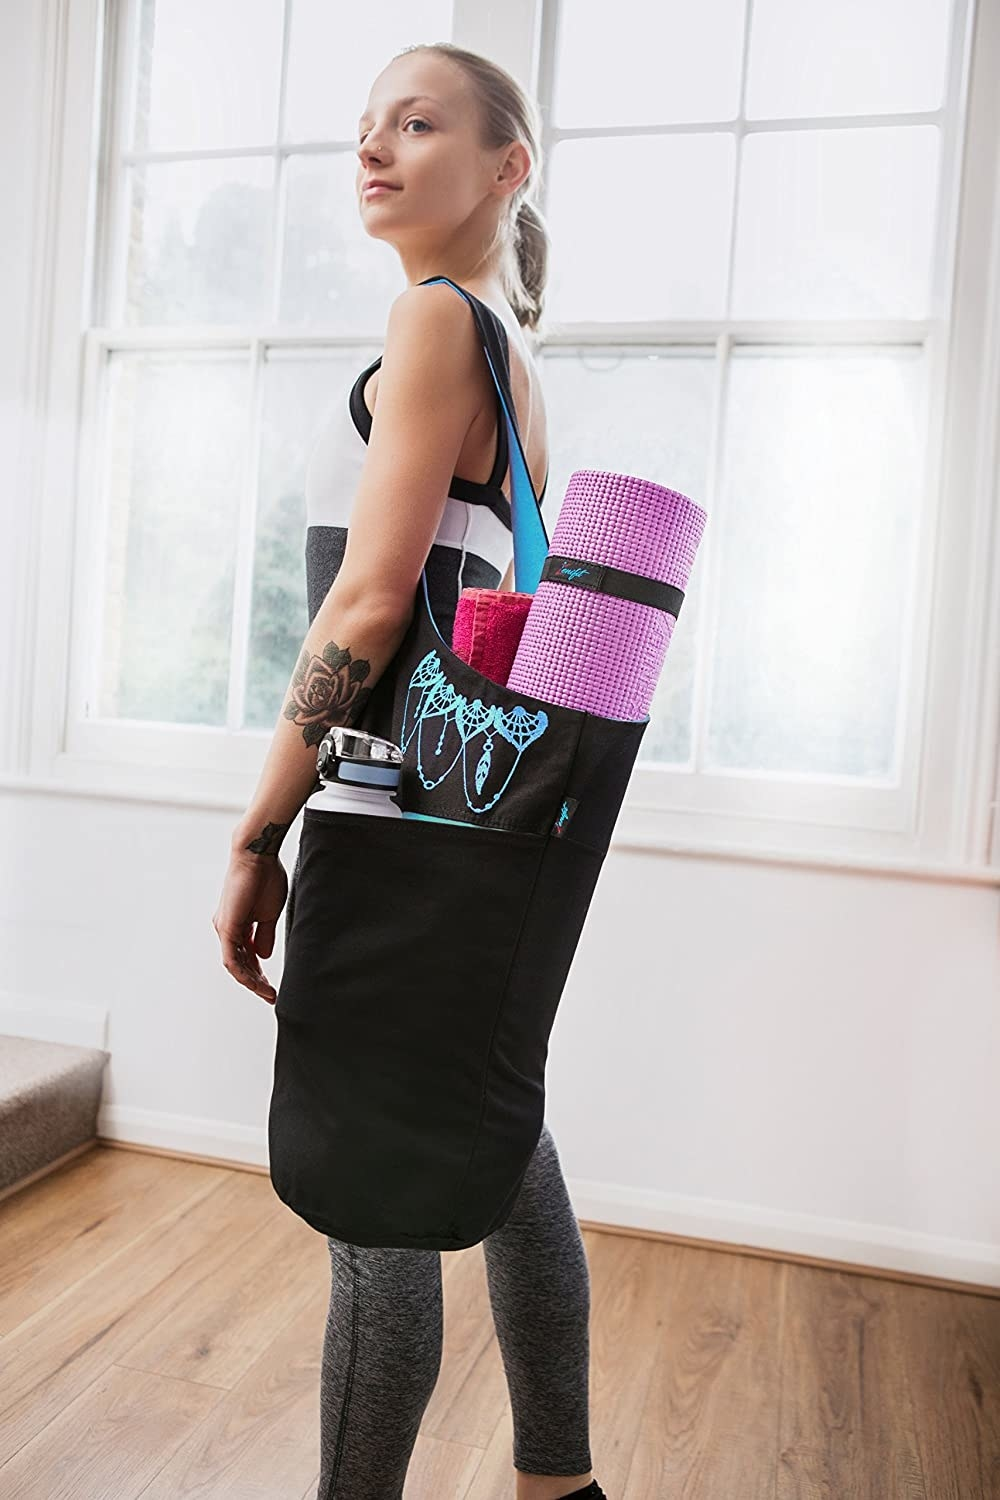 A person carrying their yoga mat in the mat bag